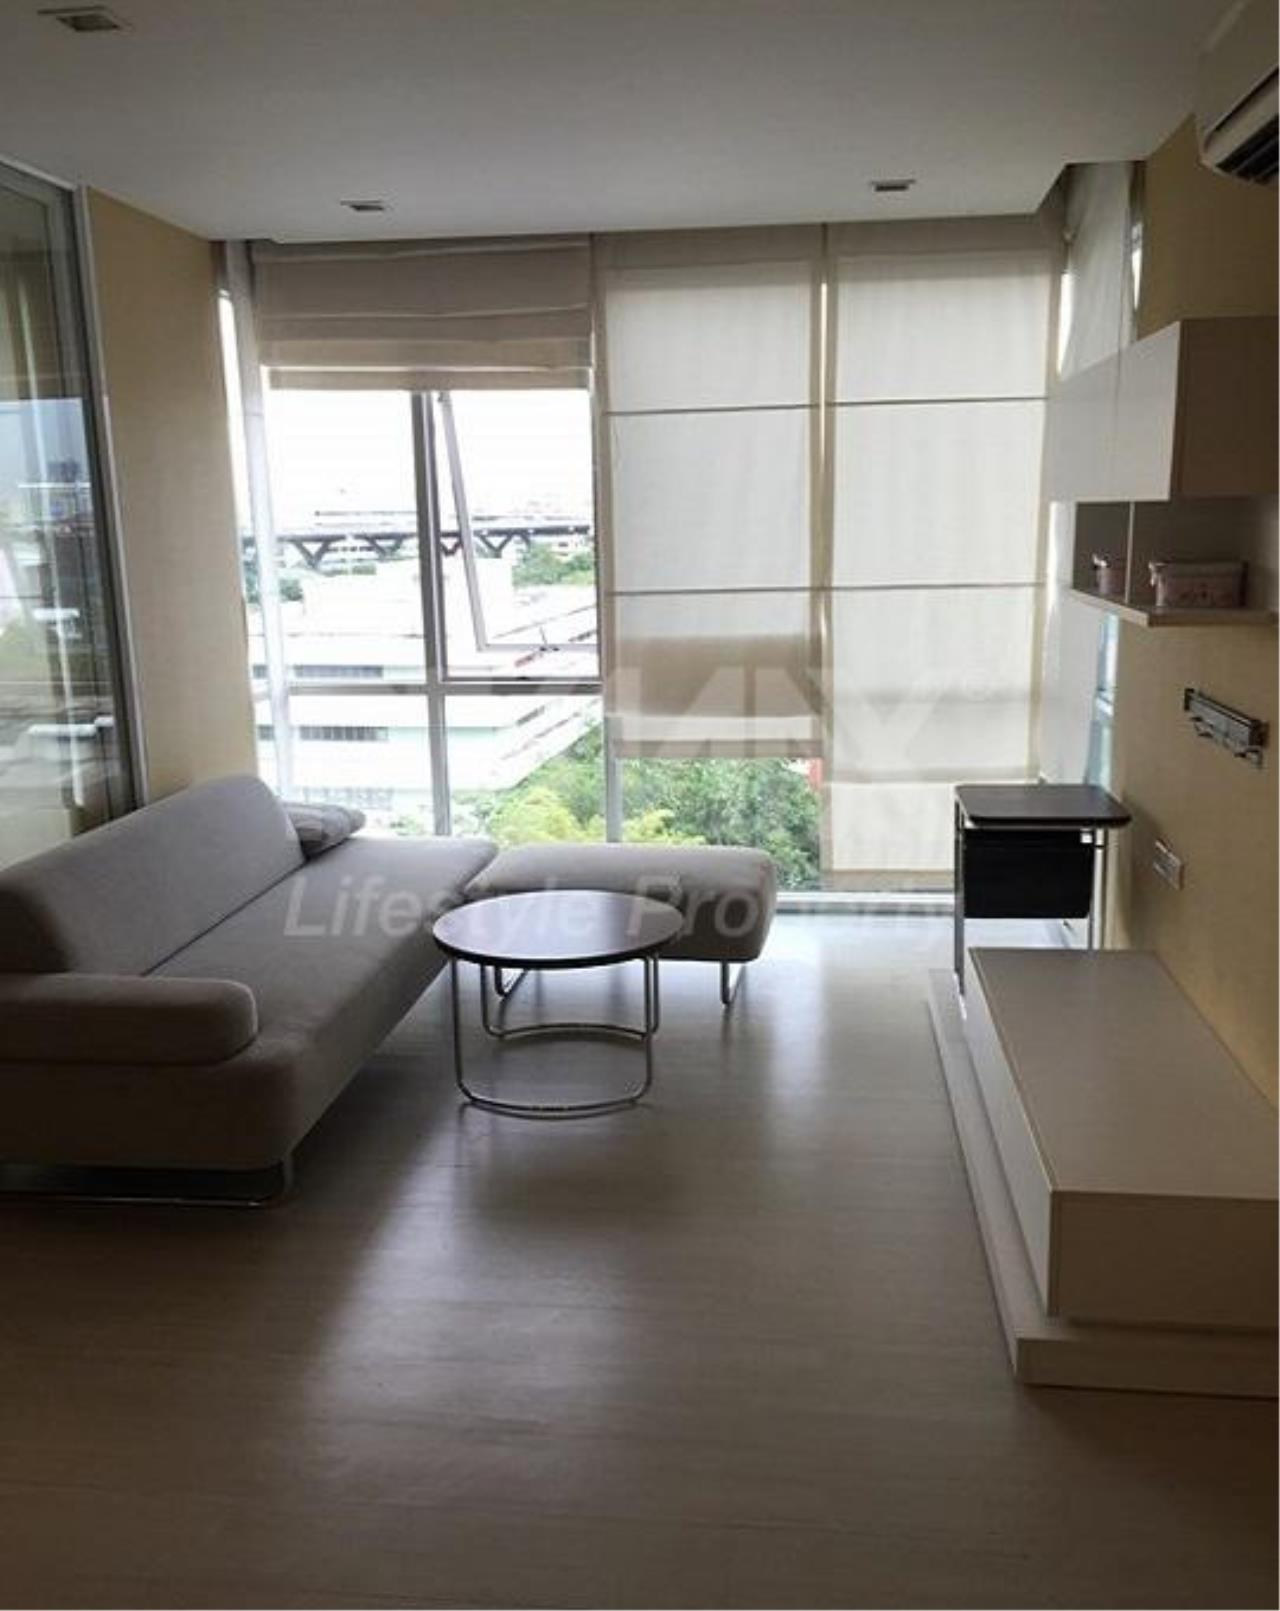 RE/MAX LifeStyle Property Agency's The Room Sukhumvit 64 1